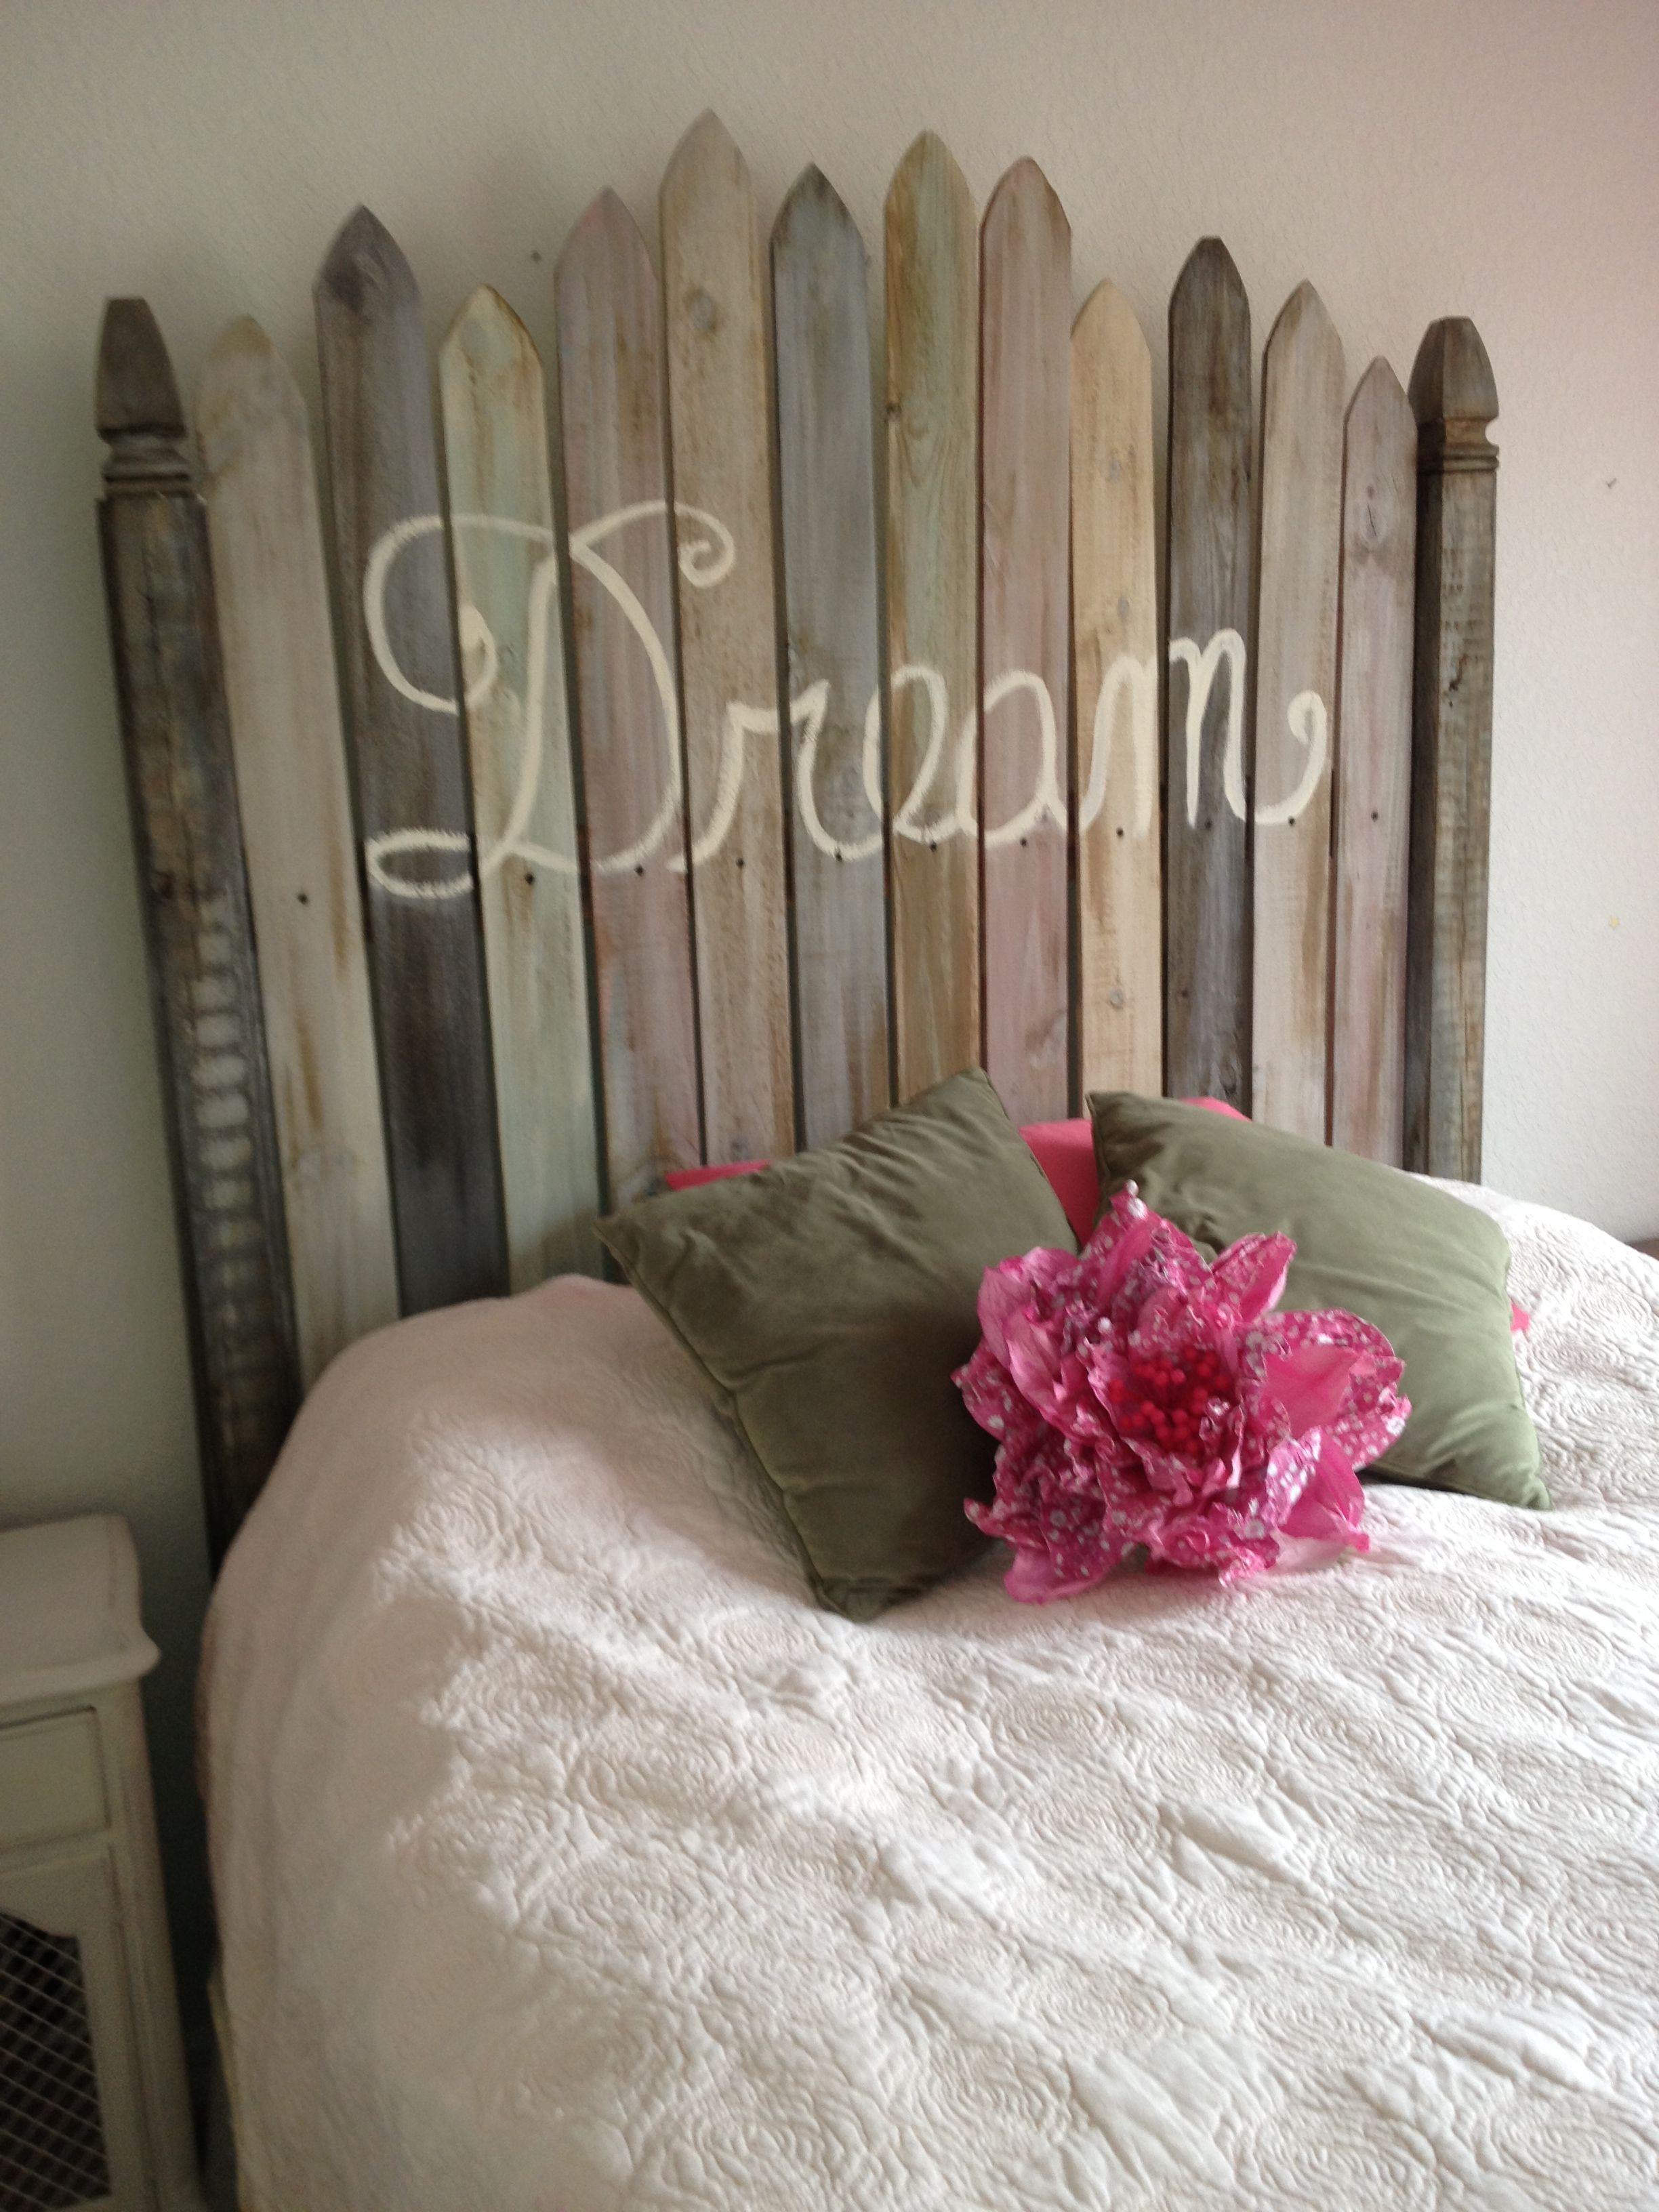 Handmade Old Fence Headboard Fence Headboard Picket